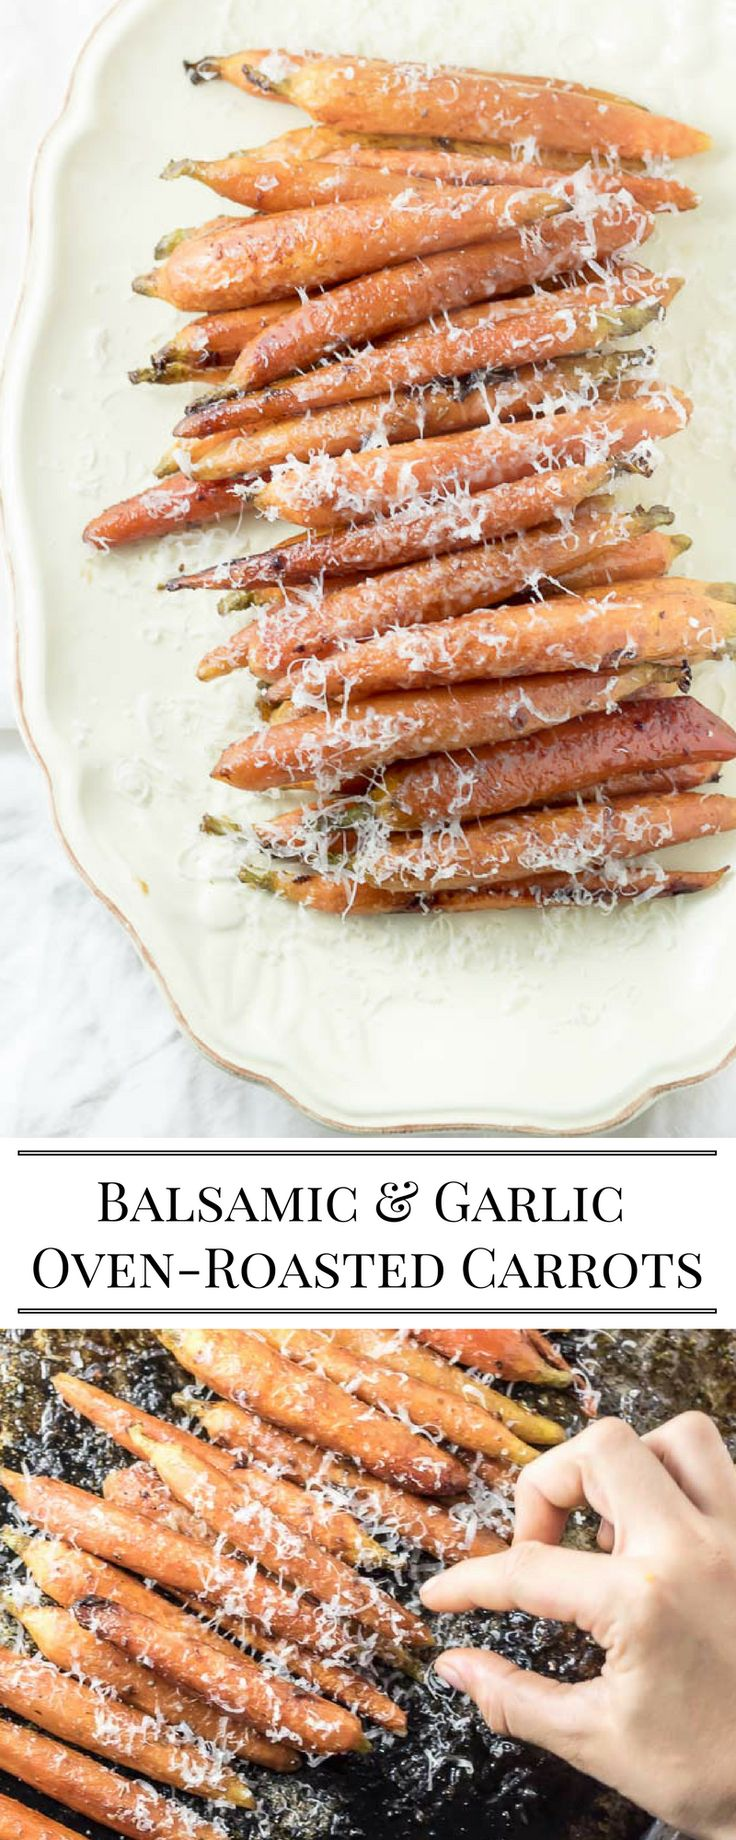 Oven -roasted Balsamic and Garlic Carrots. A simple side dish recipe - easy to make for the holiday table.